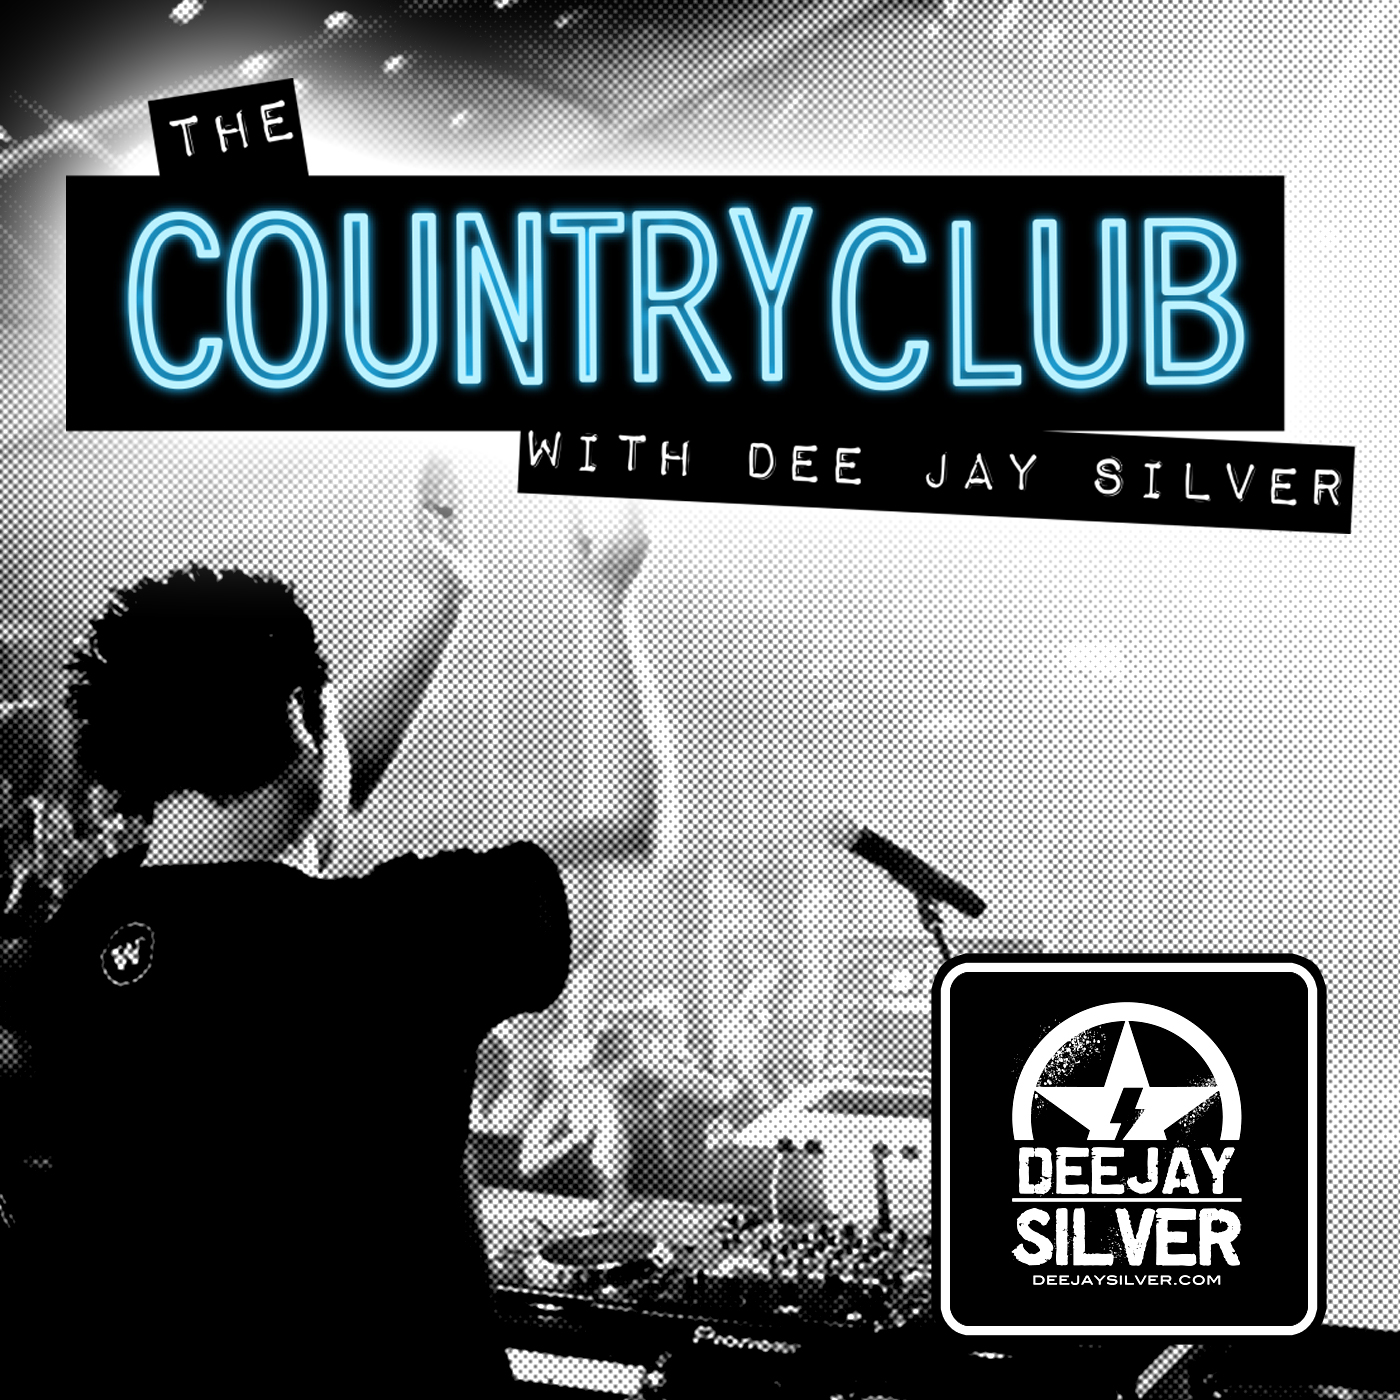 The Country Club with Dee Jay Silver